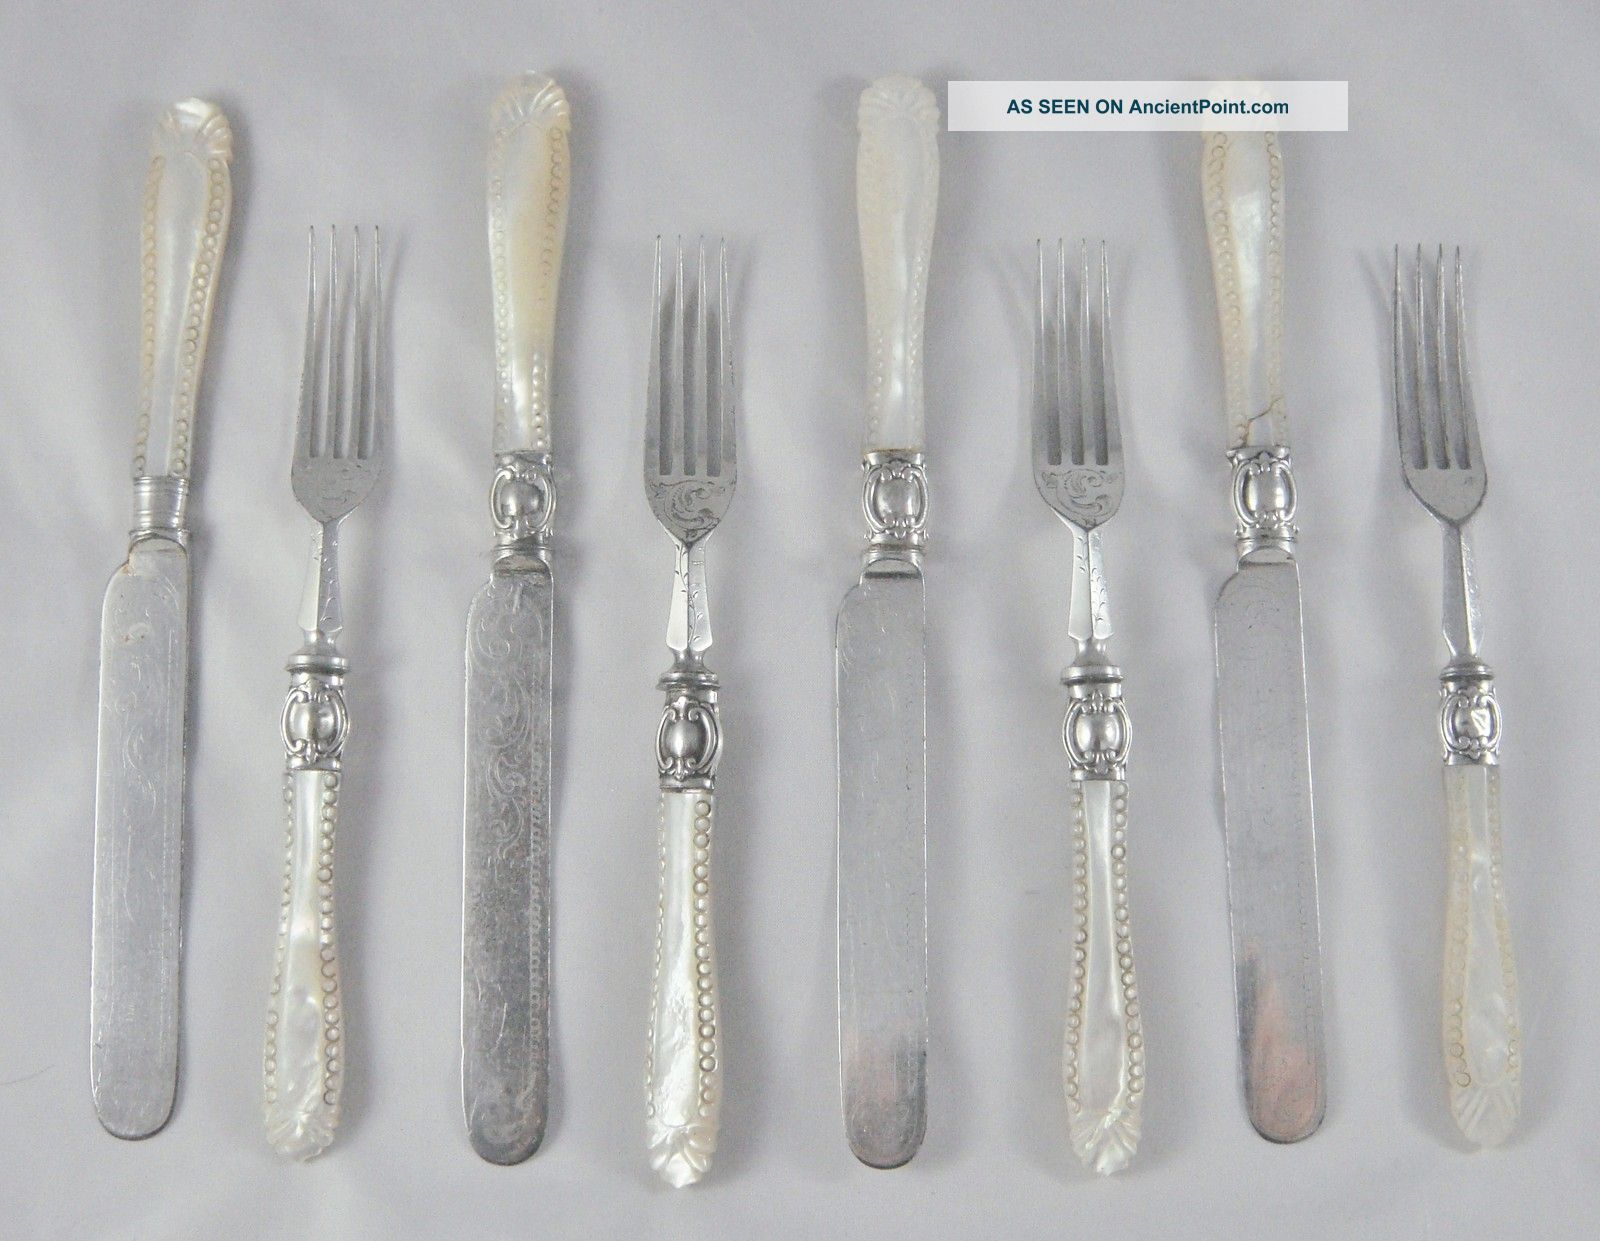 8 Rare Antique Carved Mother Of Pearl Silver Close Plated Dessert Knives & Forks Other photo